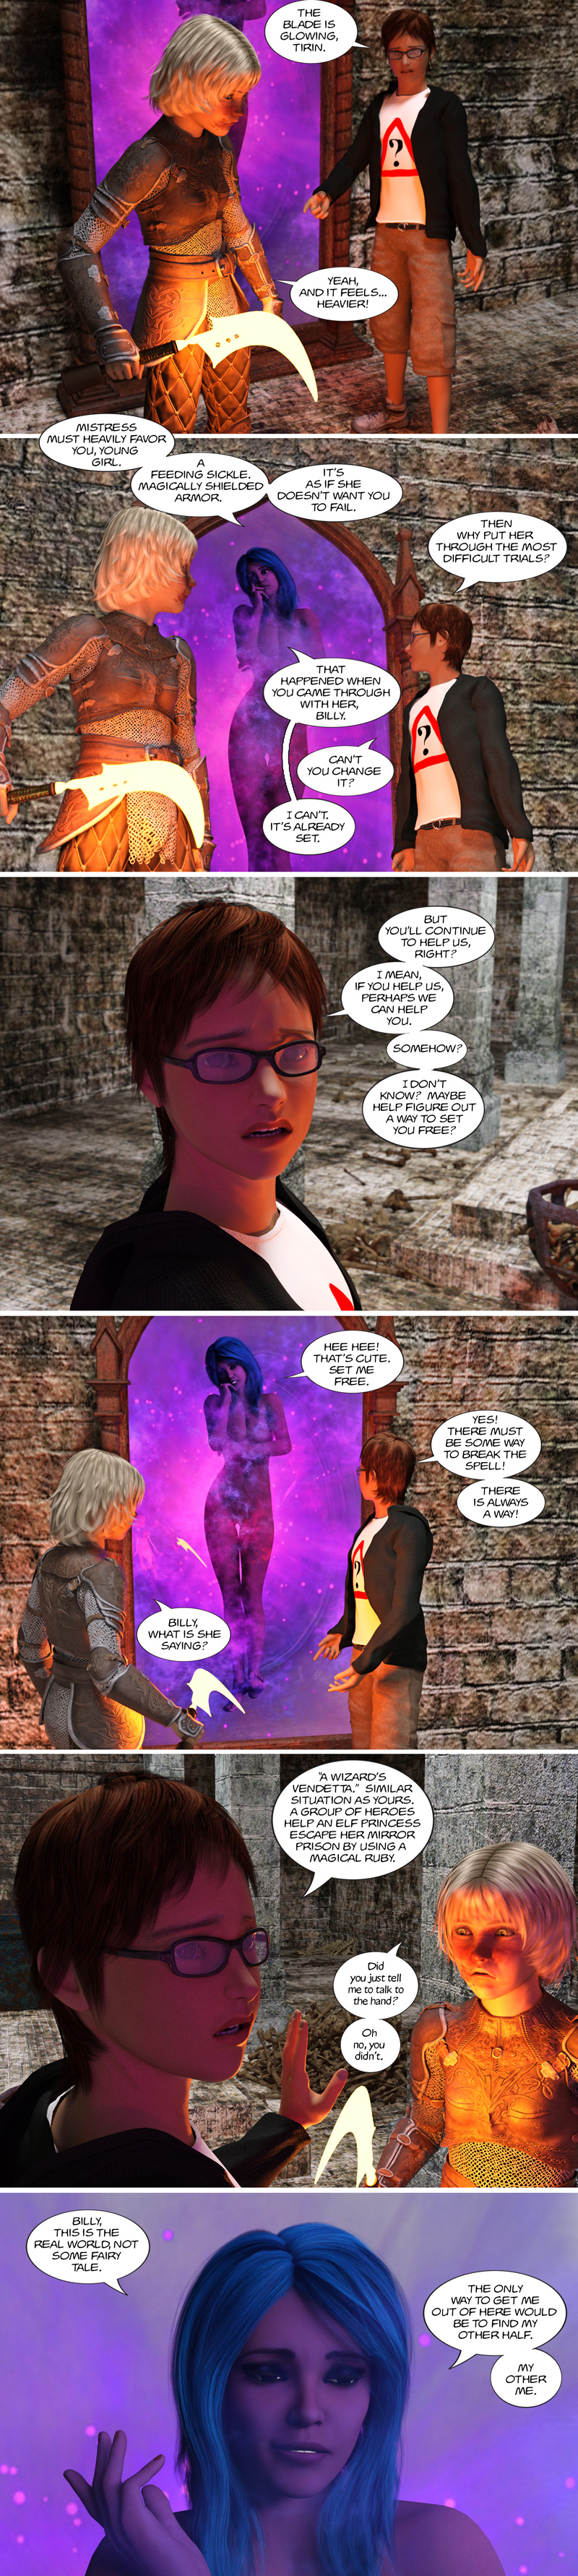 Chapter 12, page 33